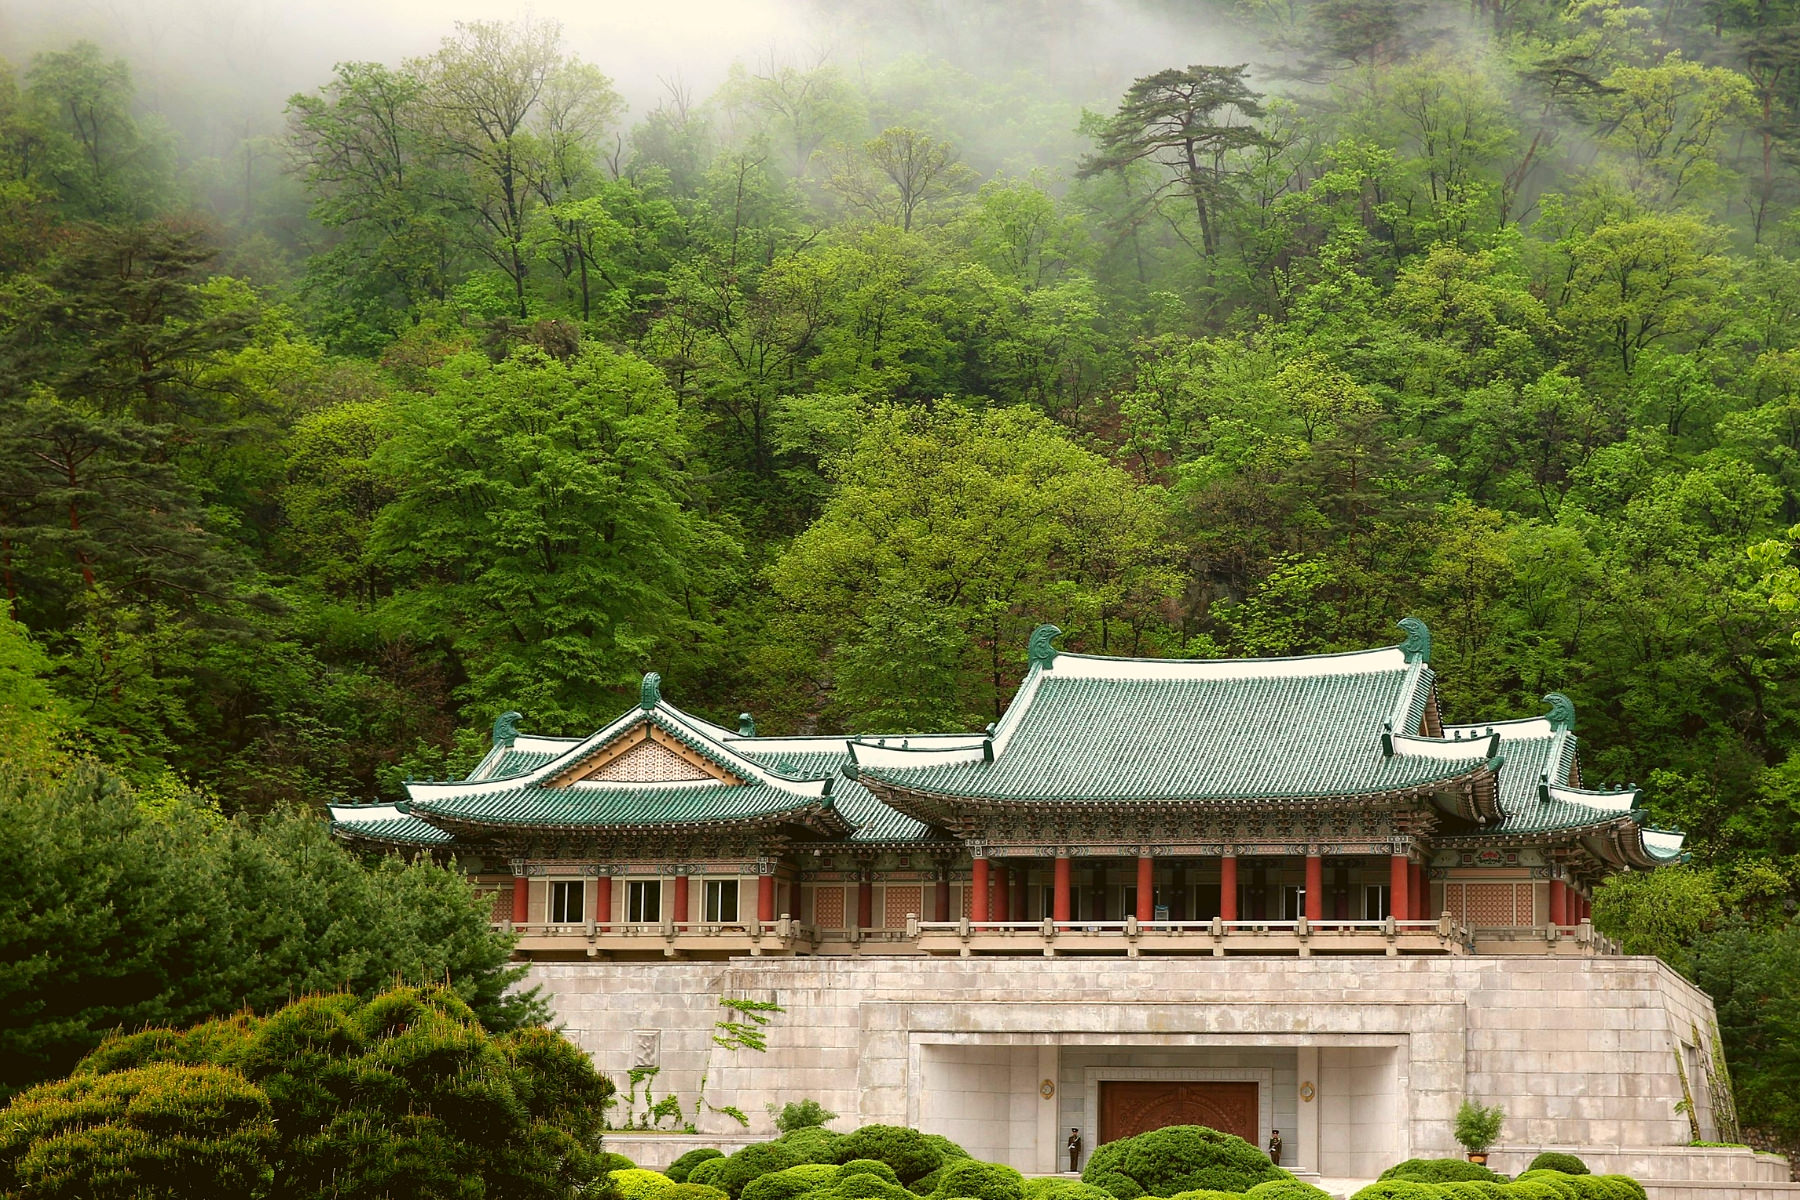 Mount Myohyang in North Korea with KTG